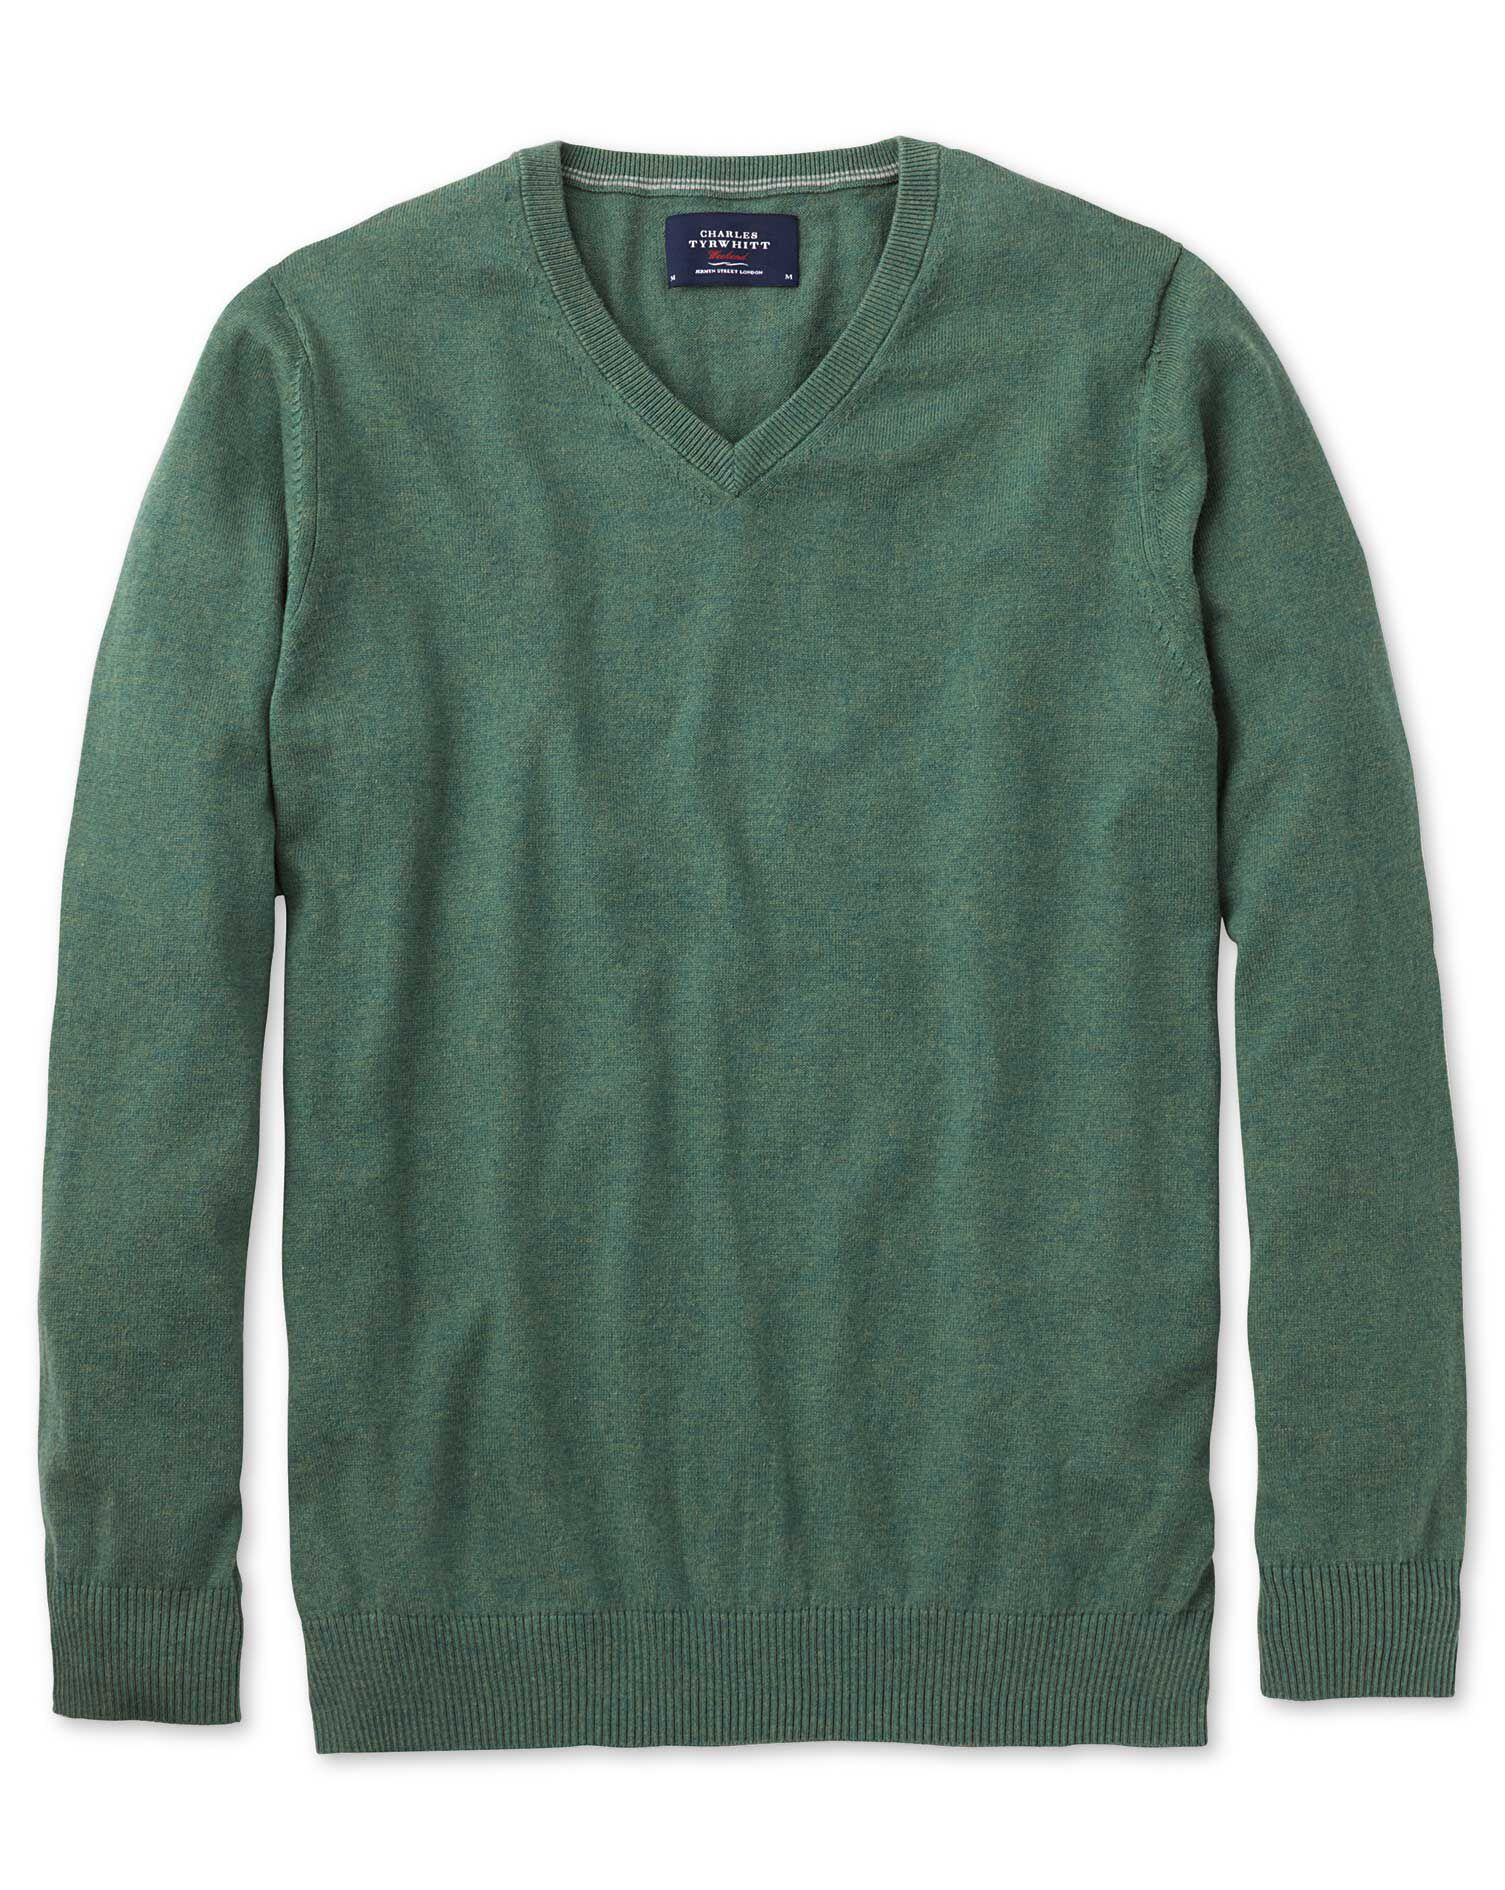 Mid Green Cotton Cashmere V-Neck Jumper Size Medium by Charles Tyrwhitt